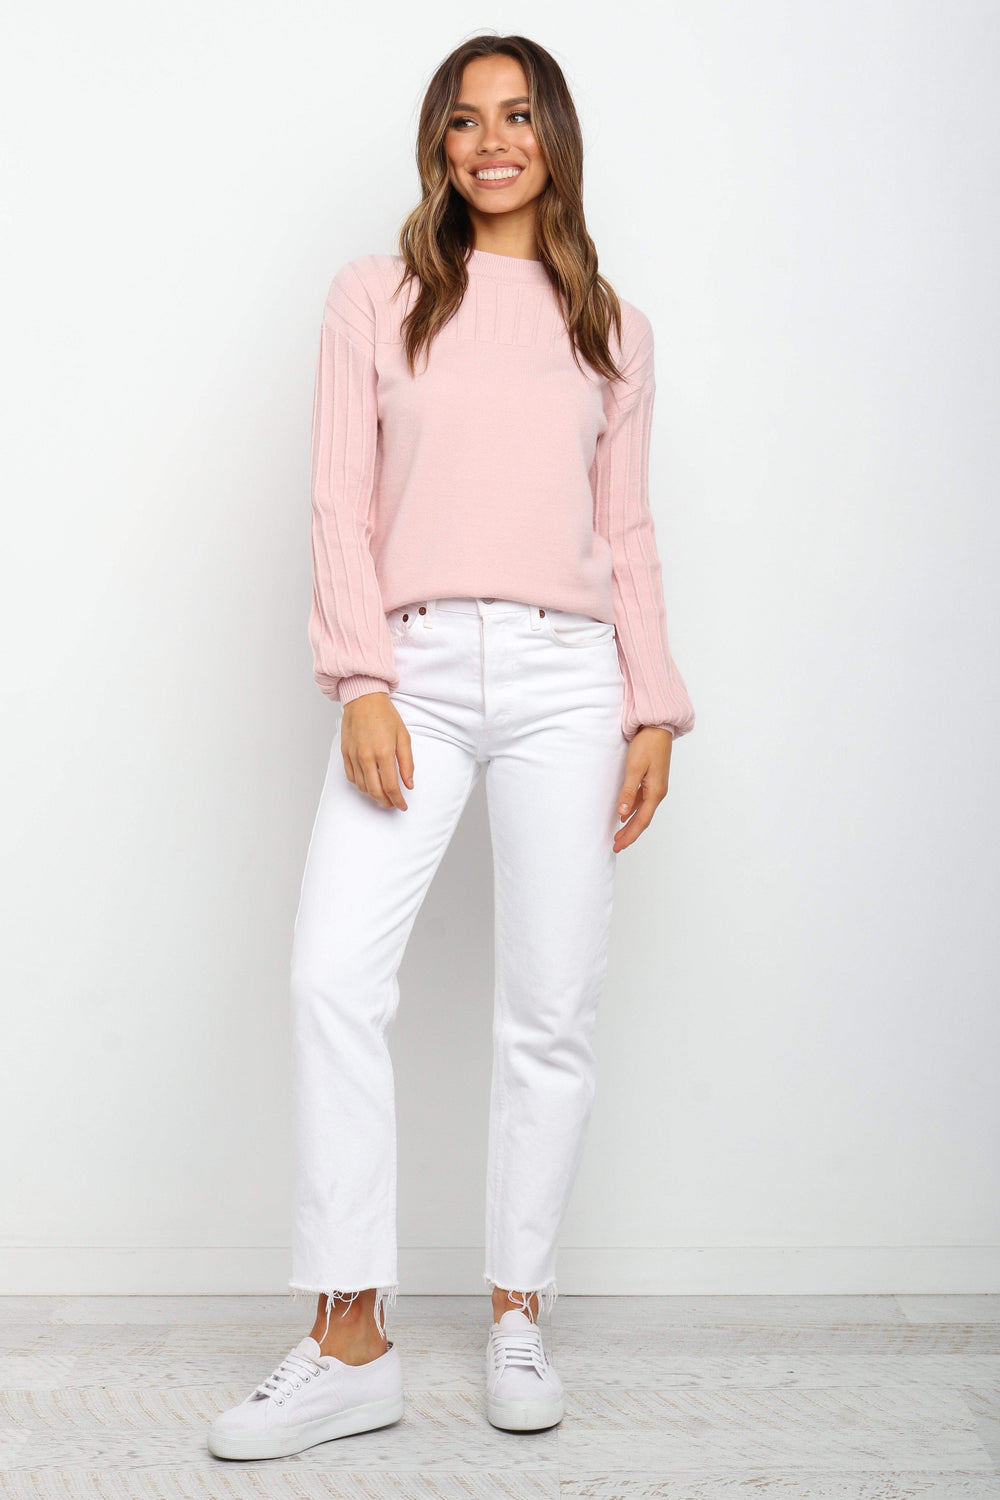 Petal and Pup USA KNITWEAR Lana Knit - Blush